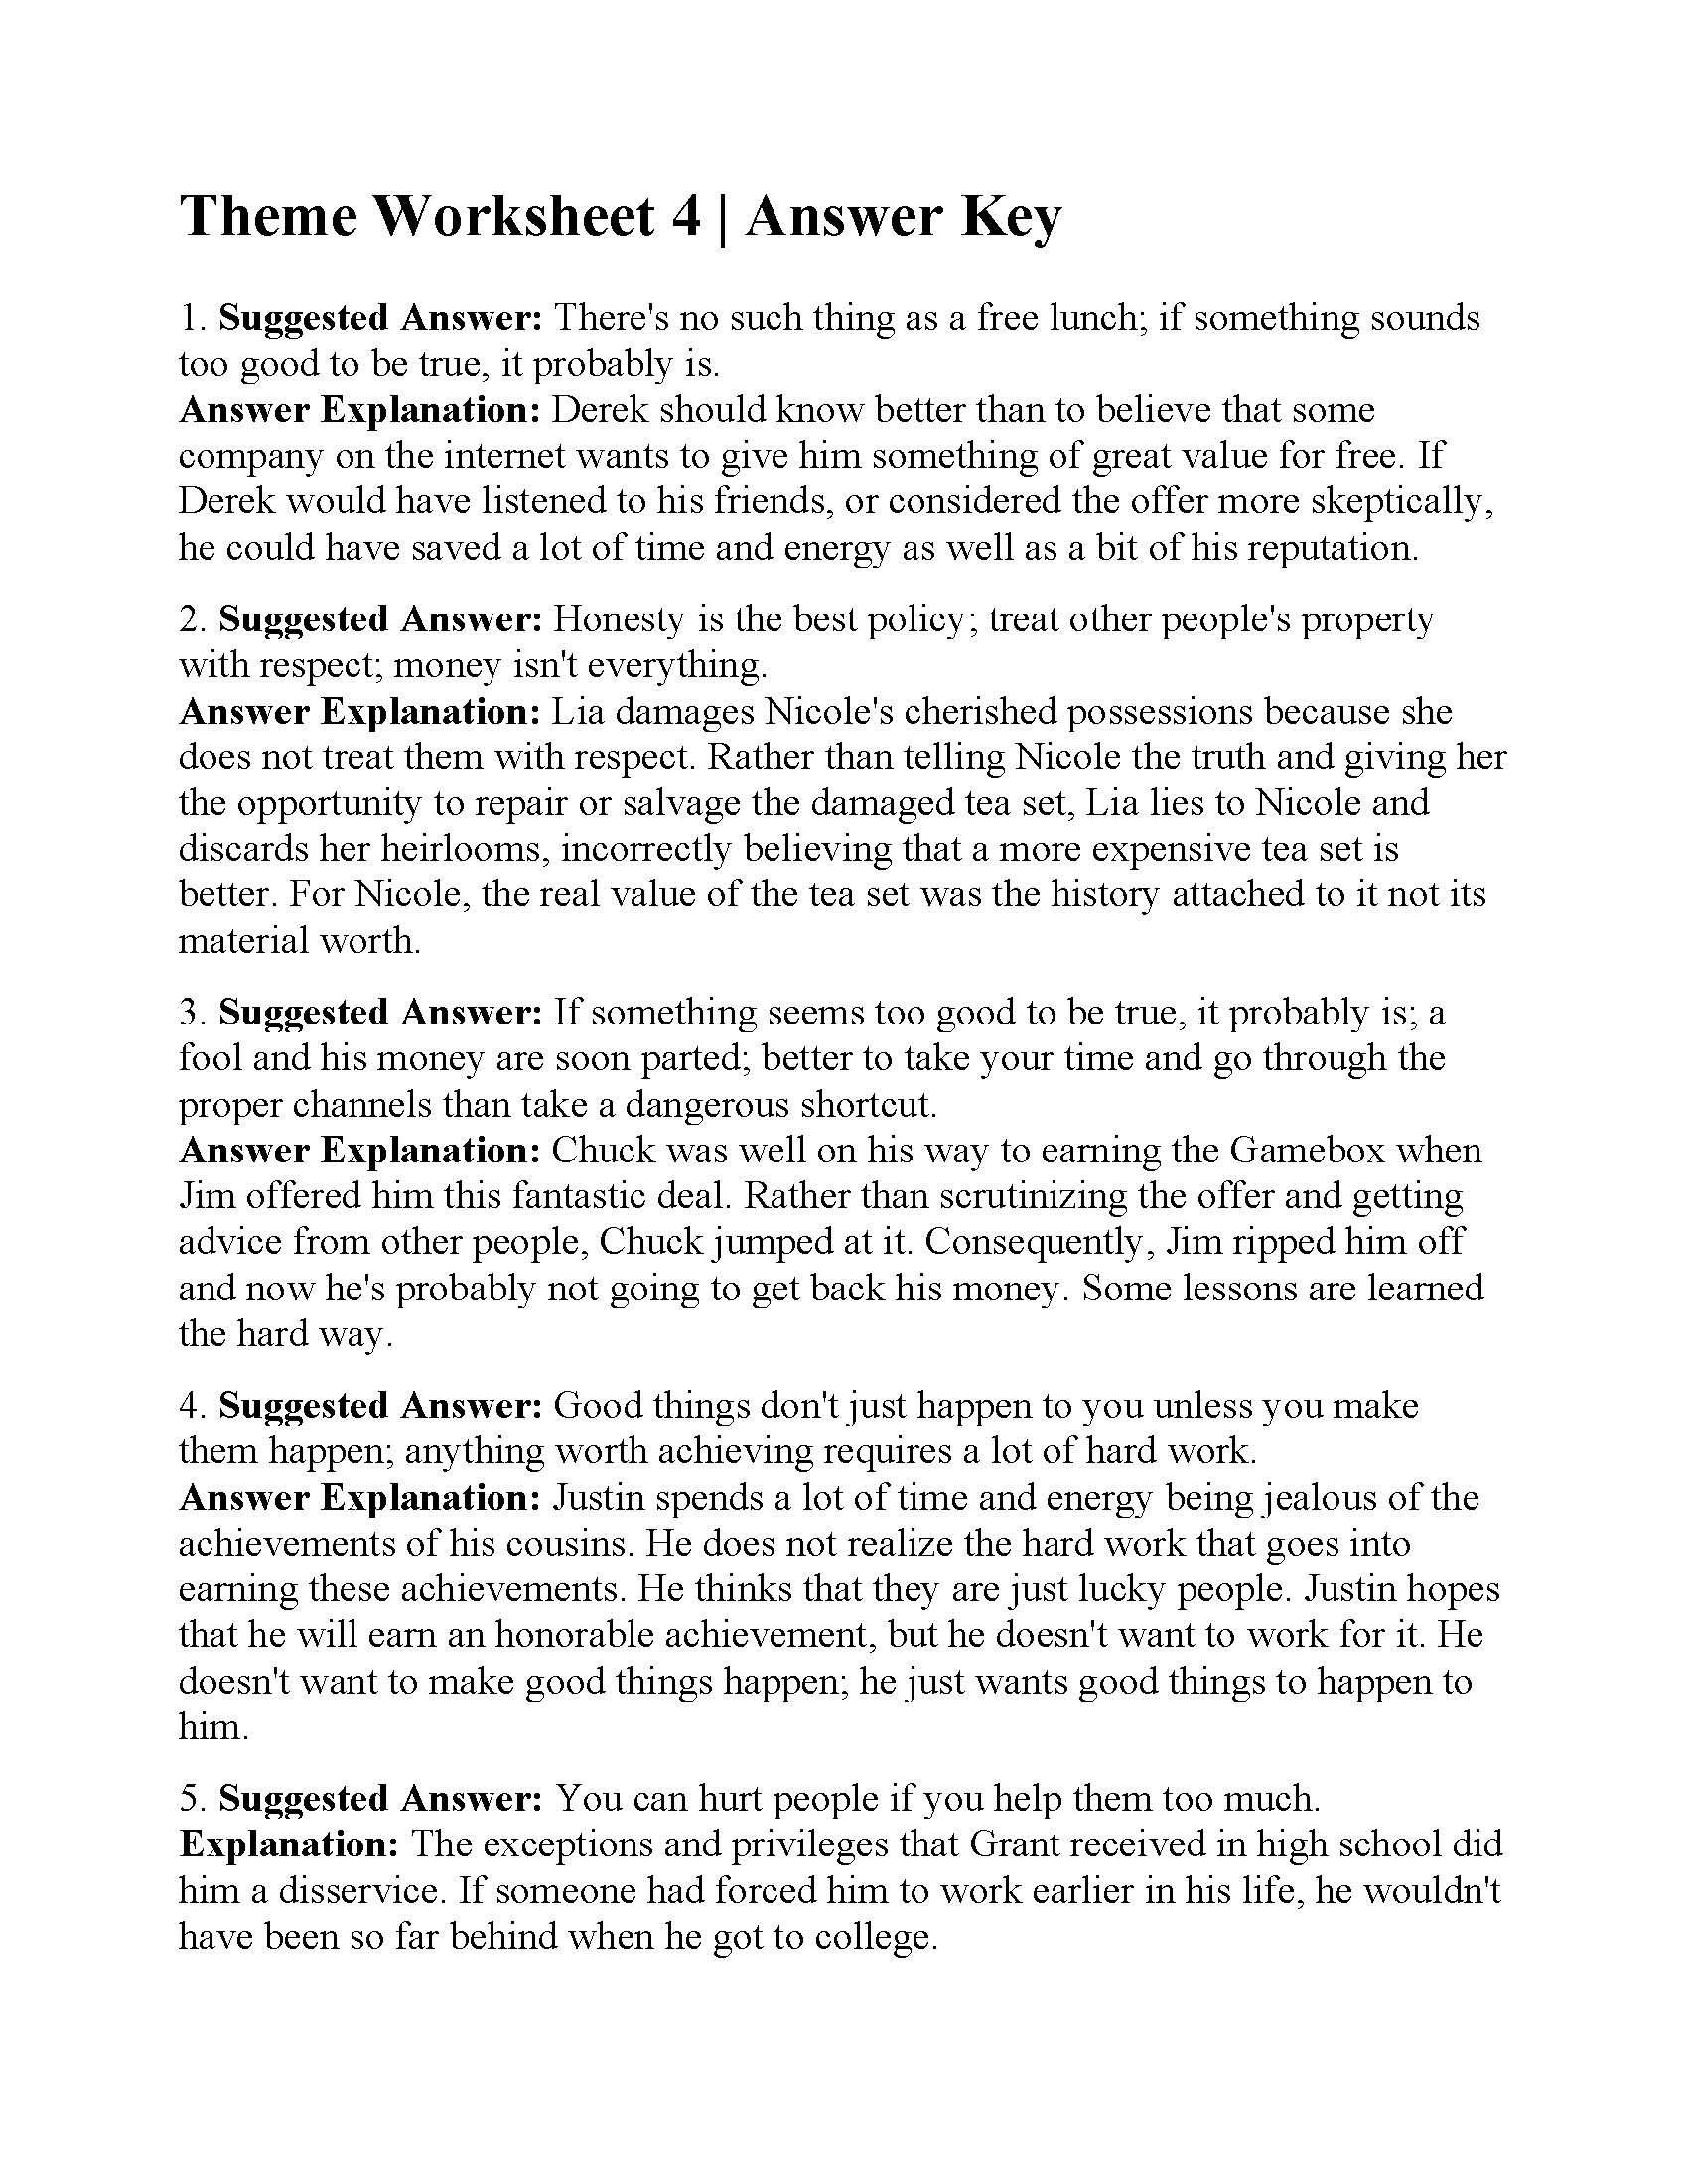 Theme Worksheet Grade 4 This is the Answer Key for the theme Worksheet 4